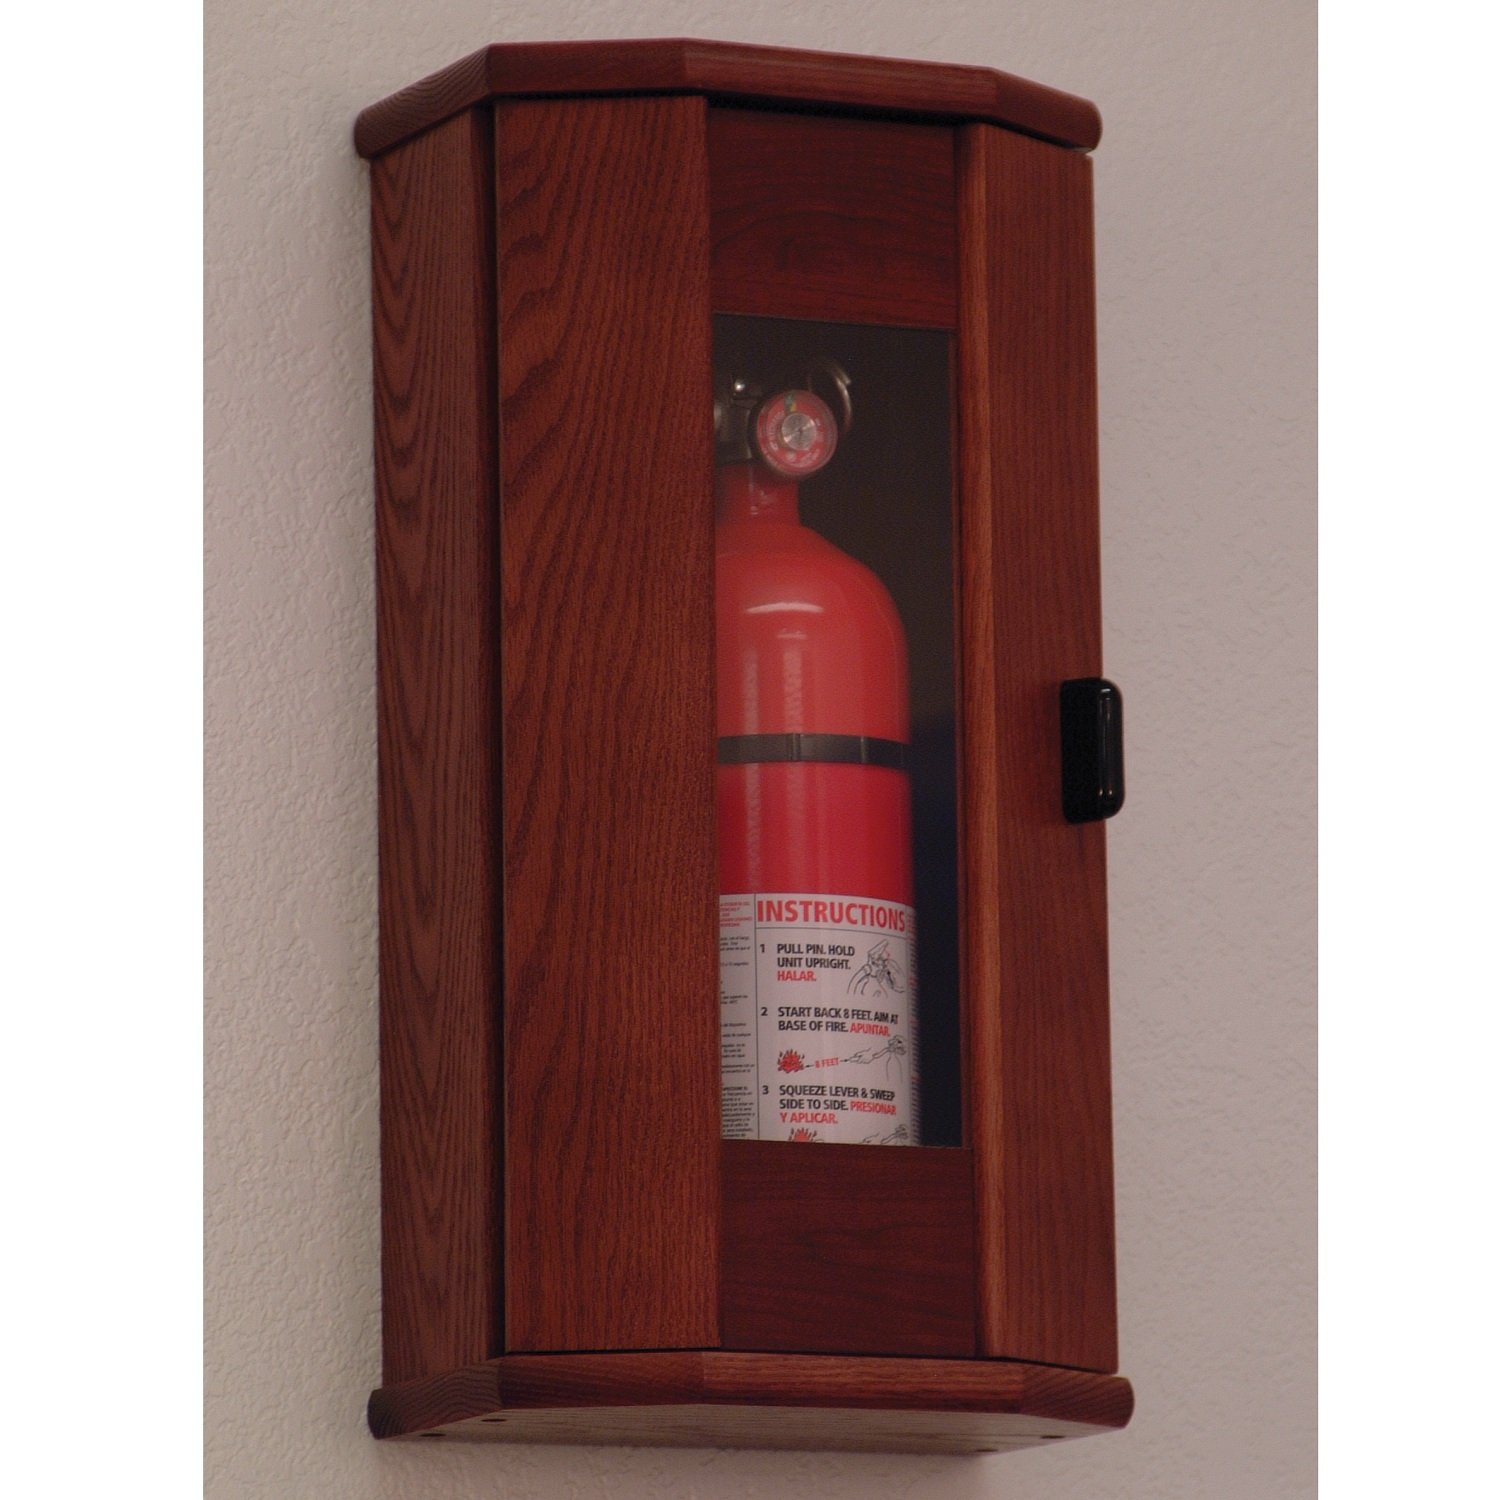 FixtureDisplays Fire Extinguisher Cabinet - 5 lb. capacity 104208